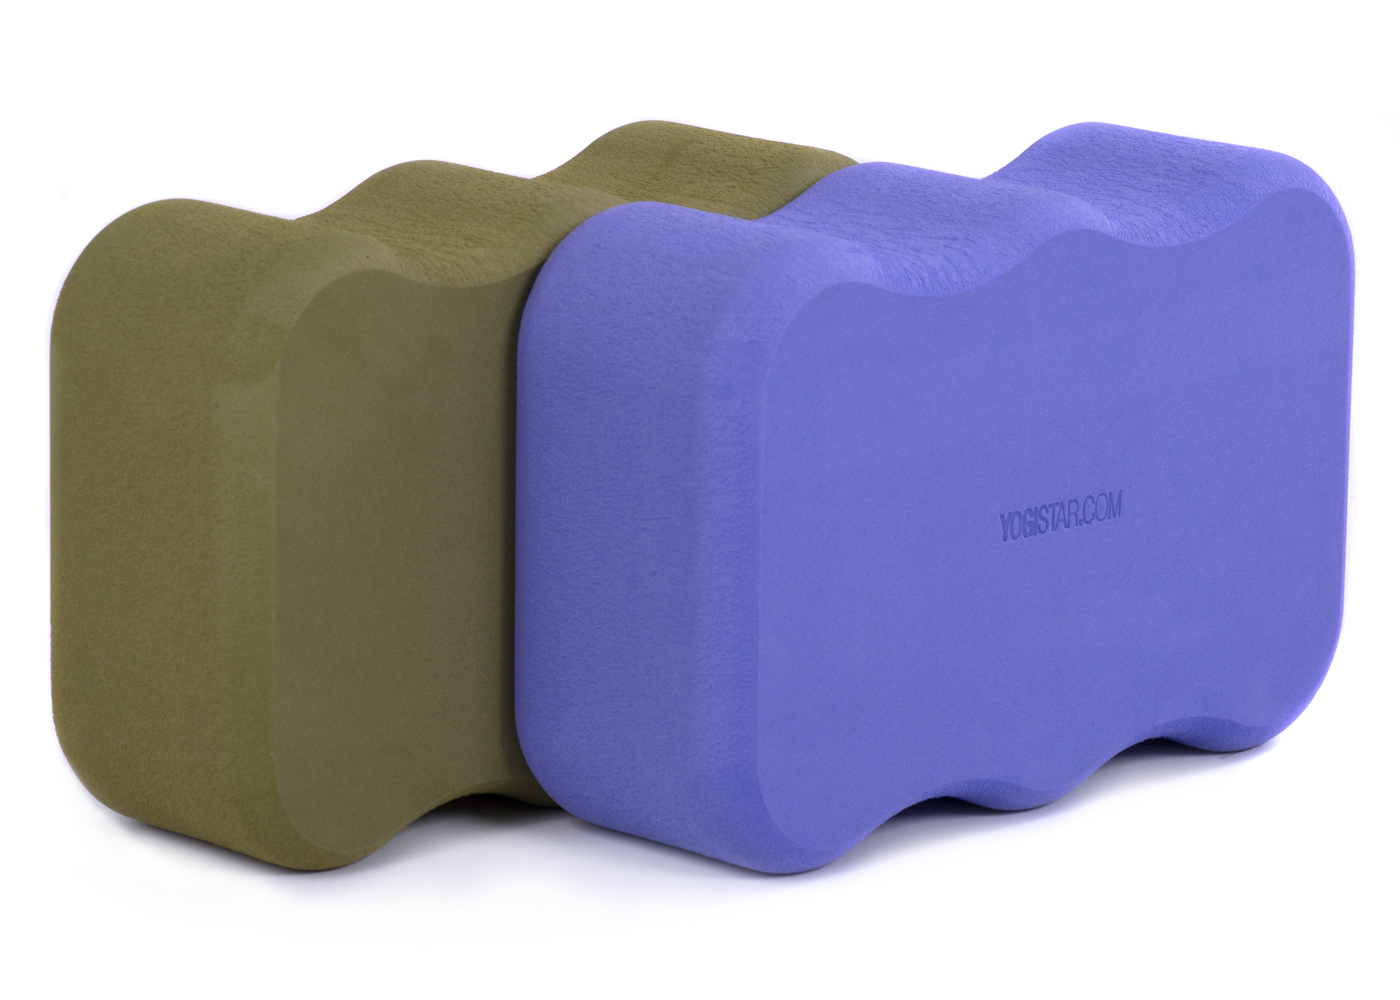 Yoga block - yogiblock 'Wave'